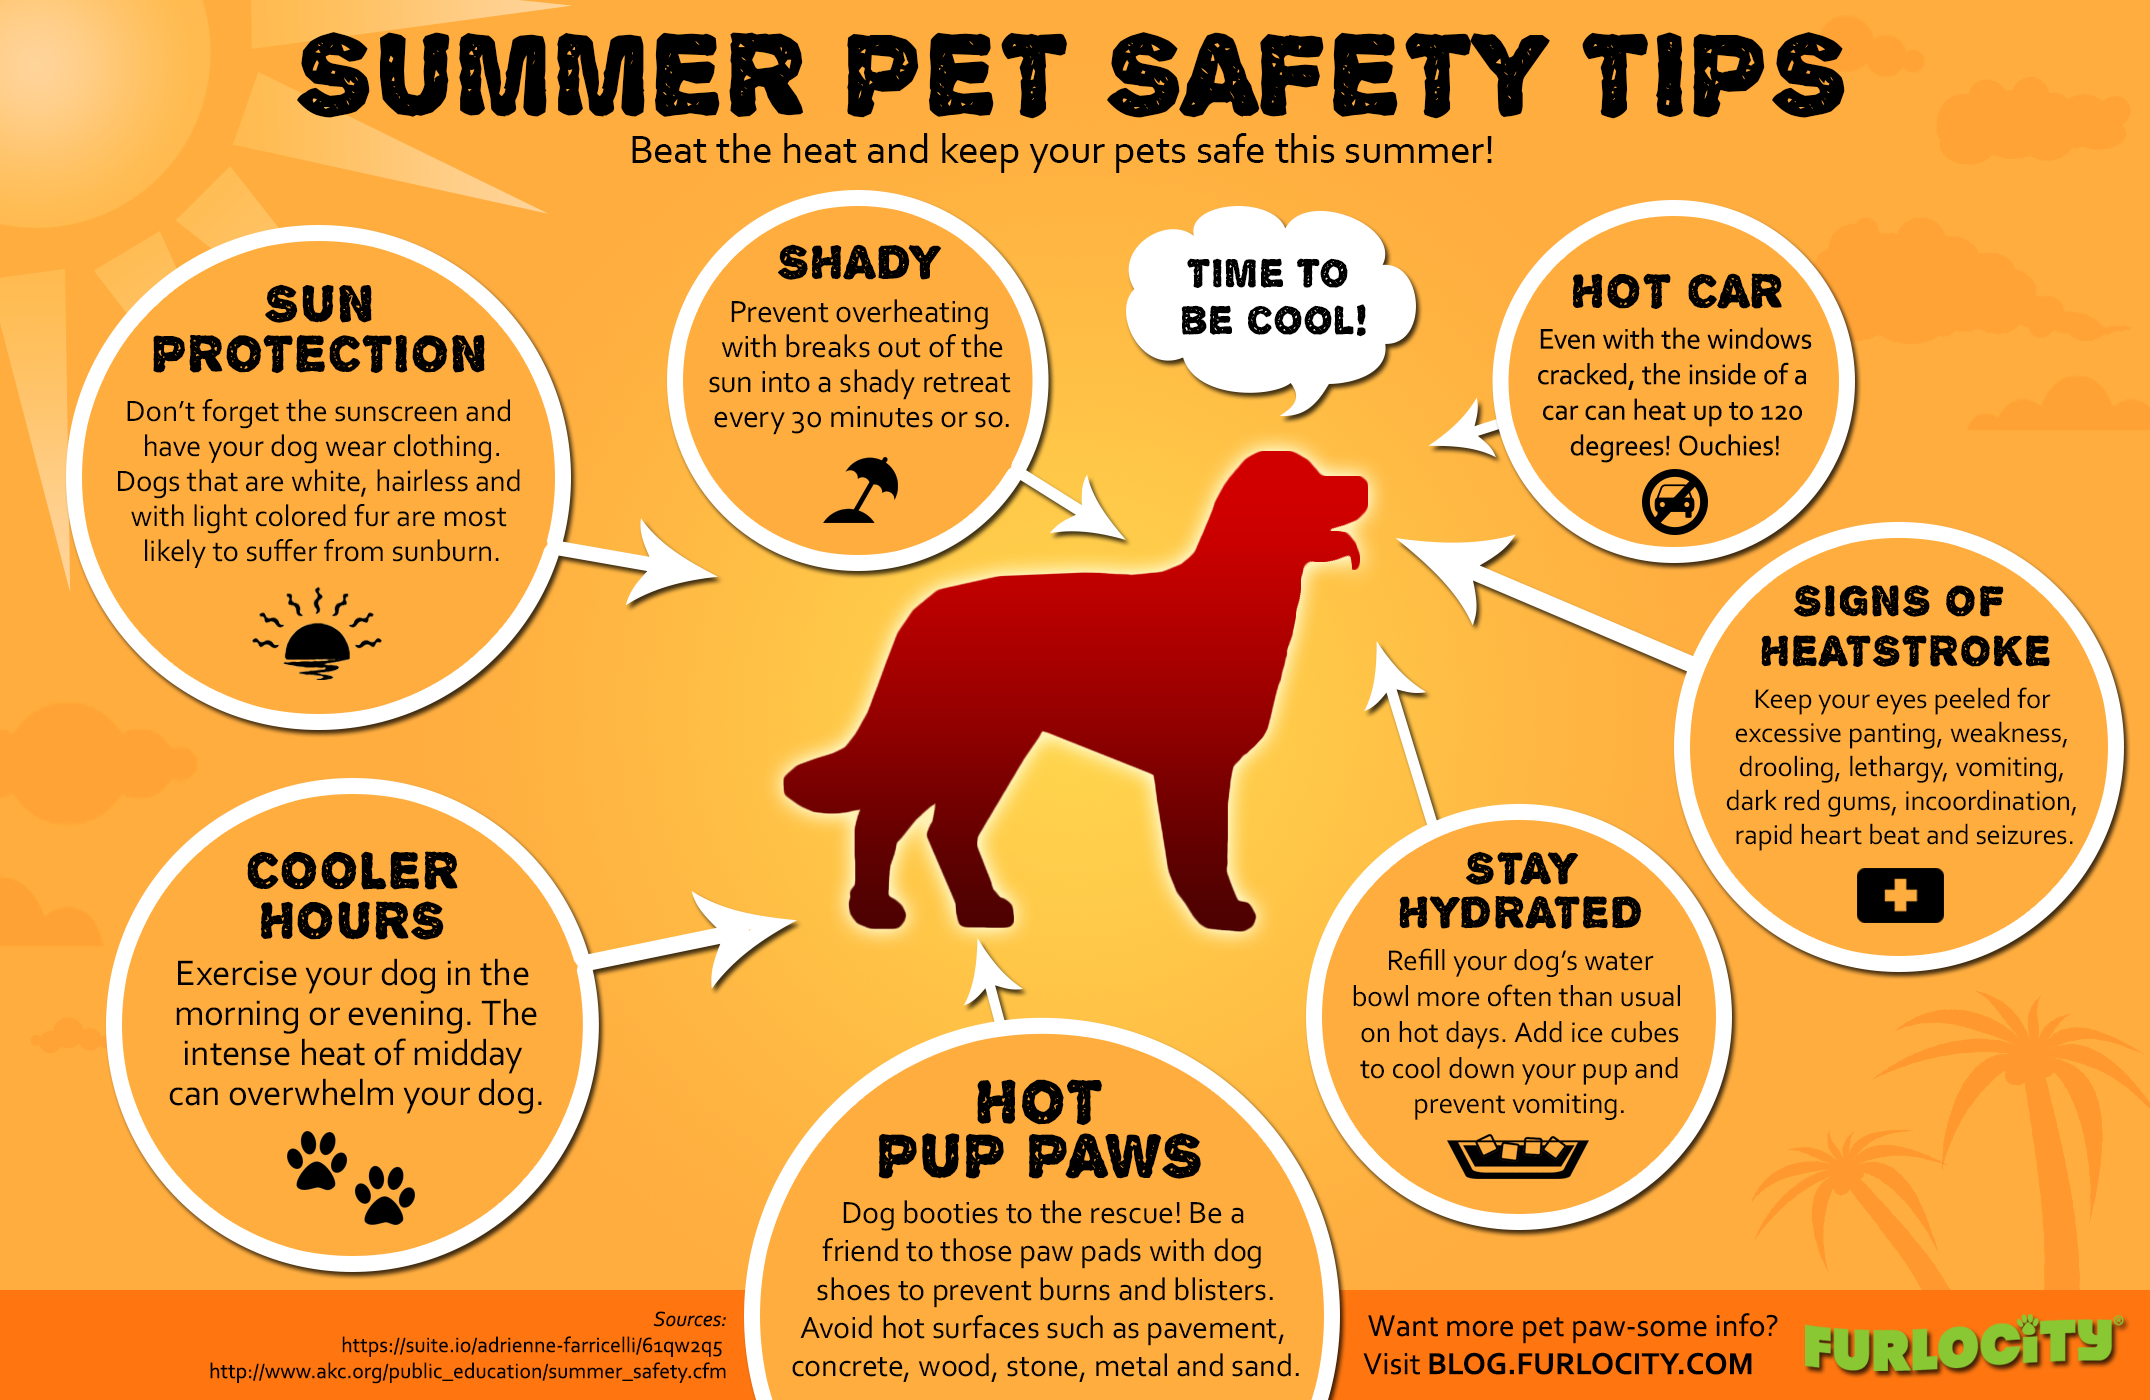 summer-pet-safety-tips_539a4cd4cb7e8